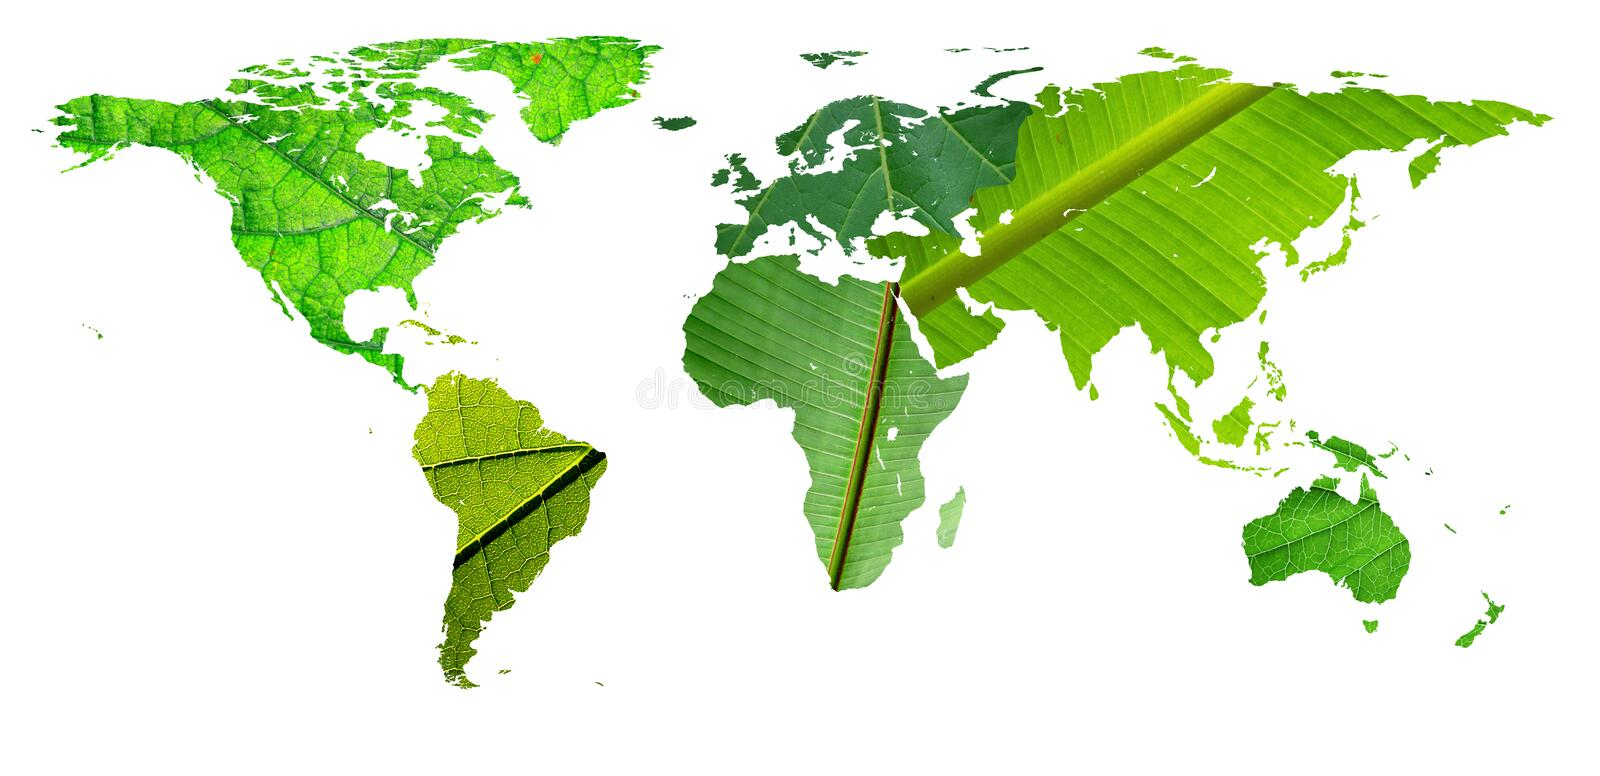 World map - continents leafs texture stock image